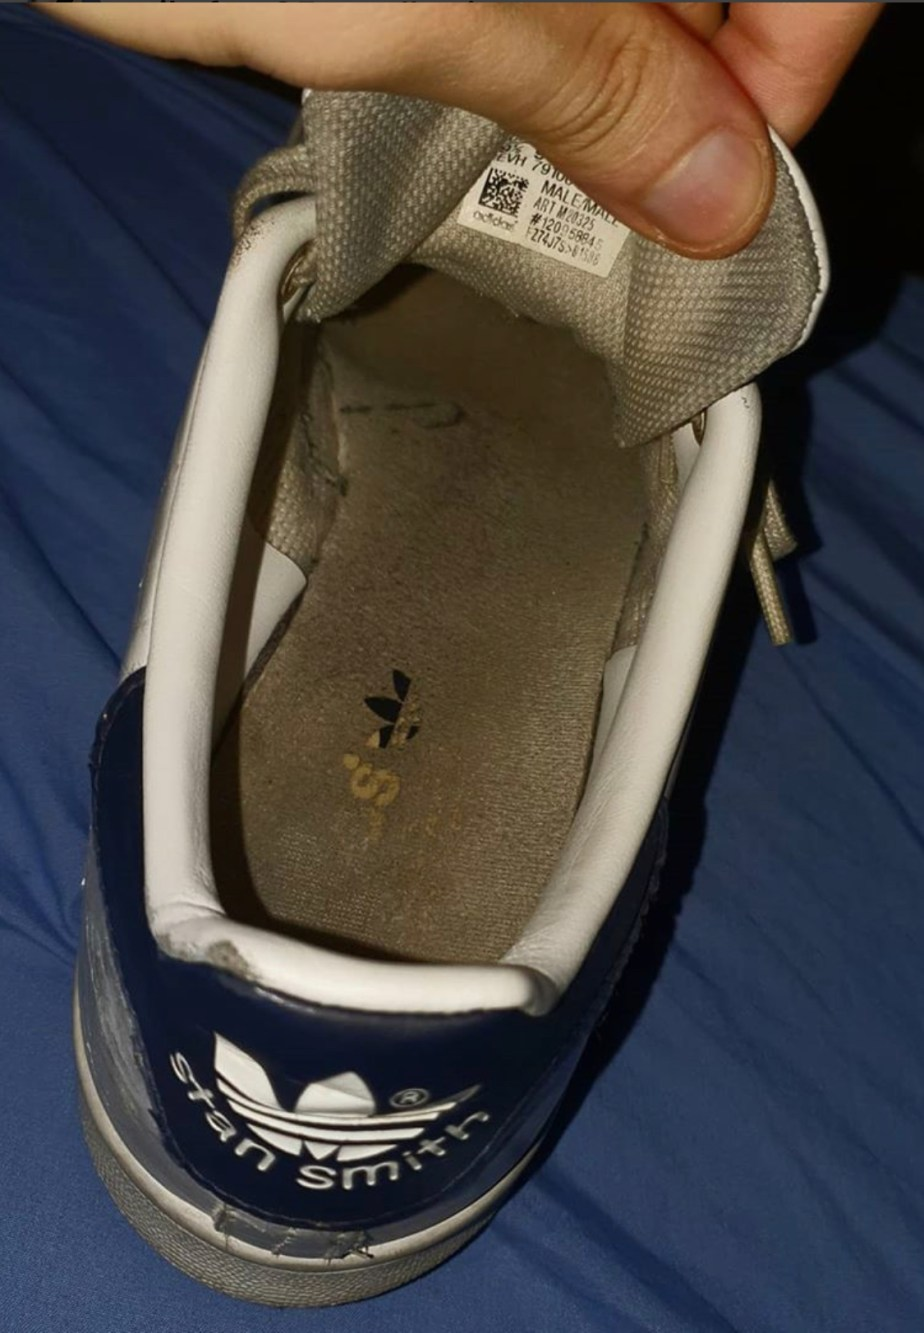 Mikefeet95 shows off his Adidas Stan Smith dirty sneaker insoles